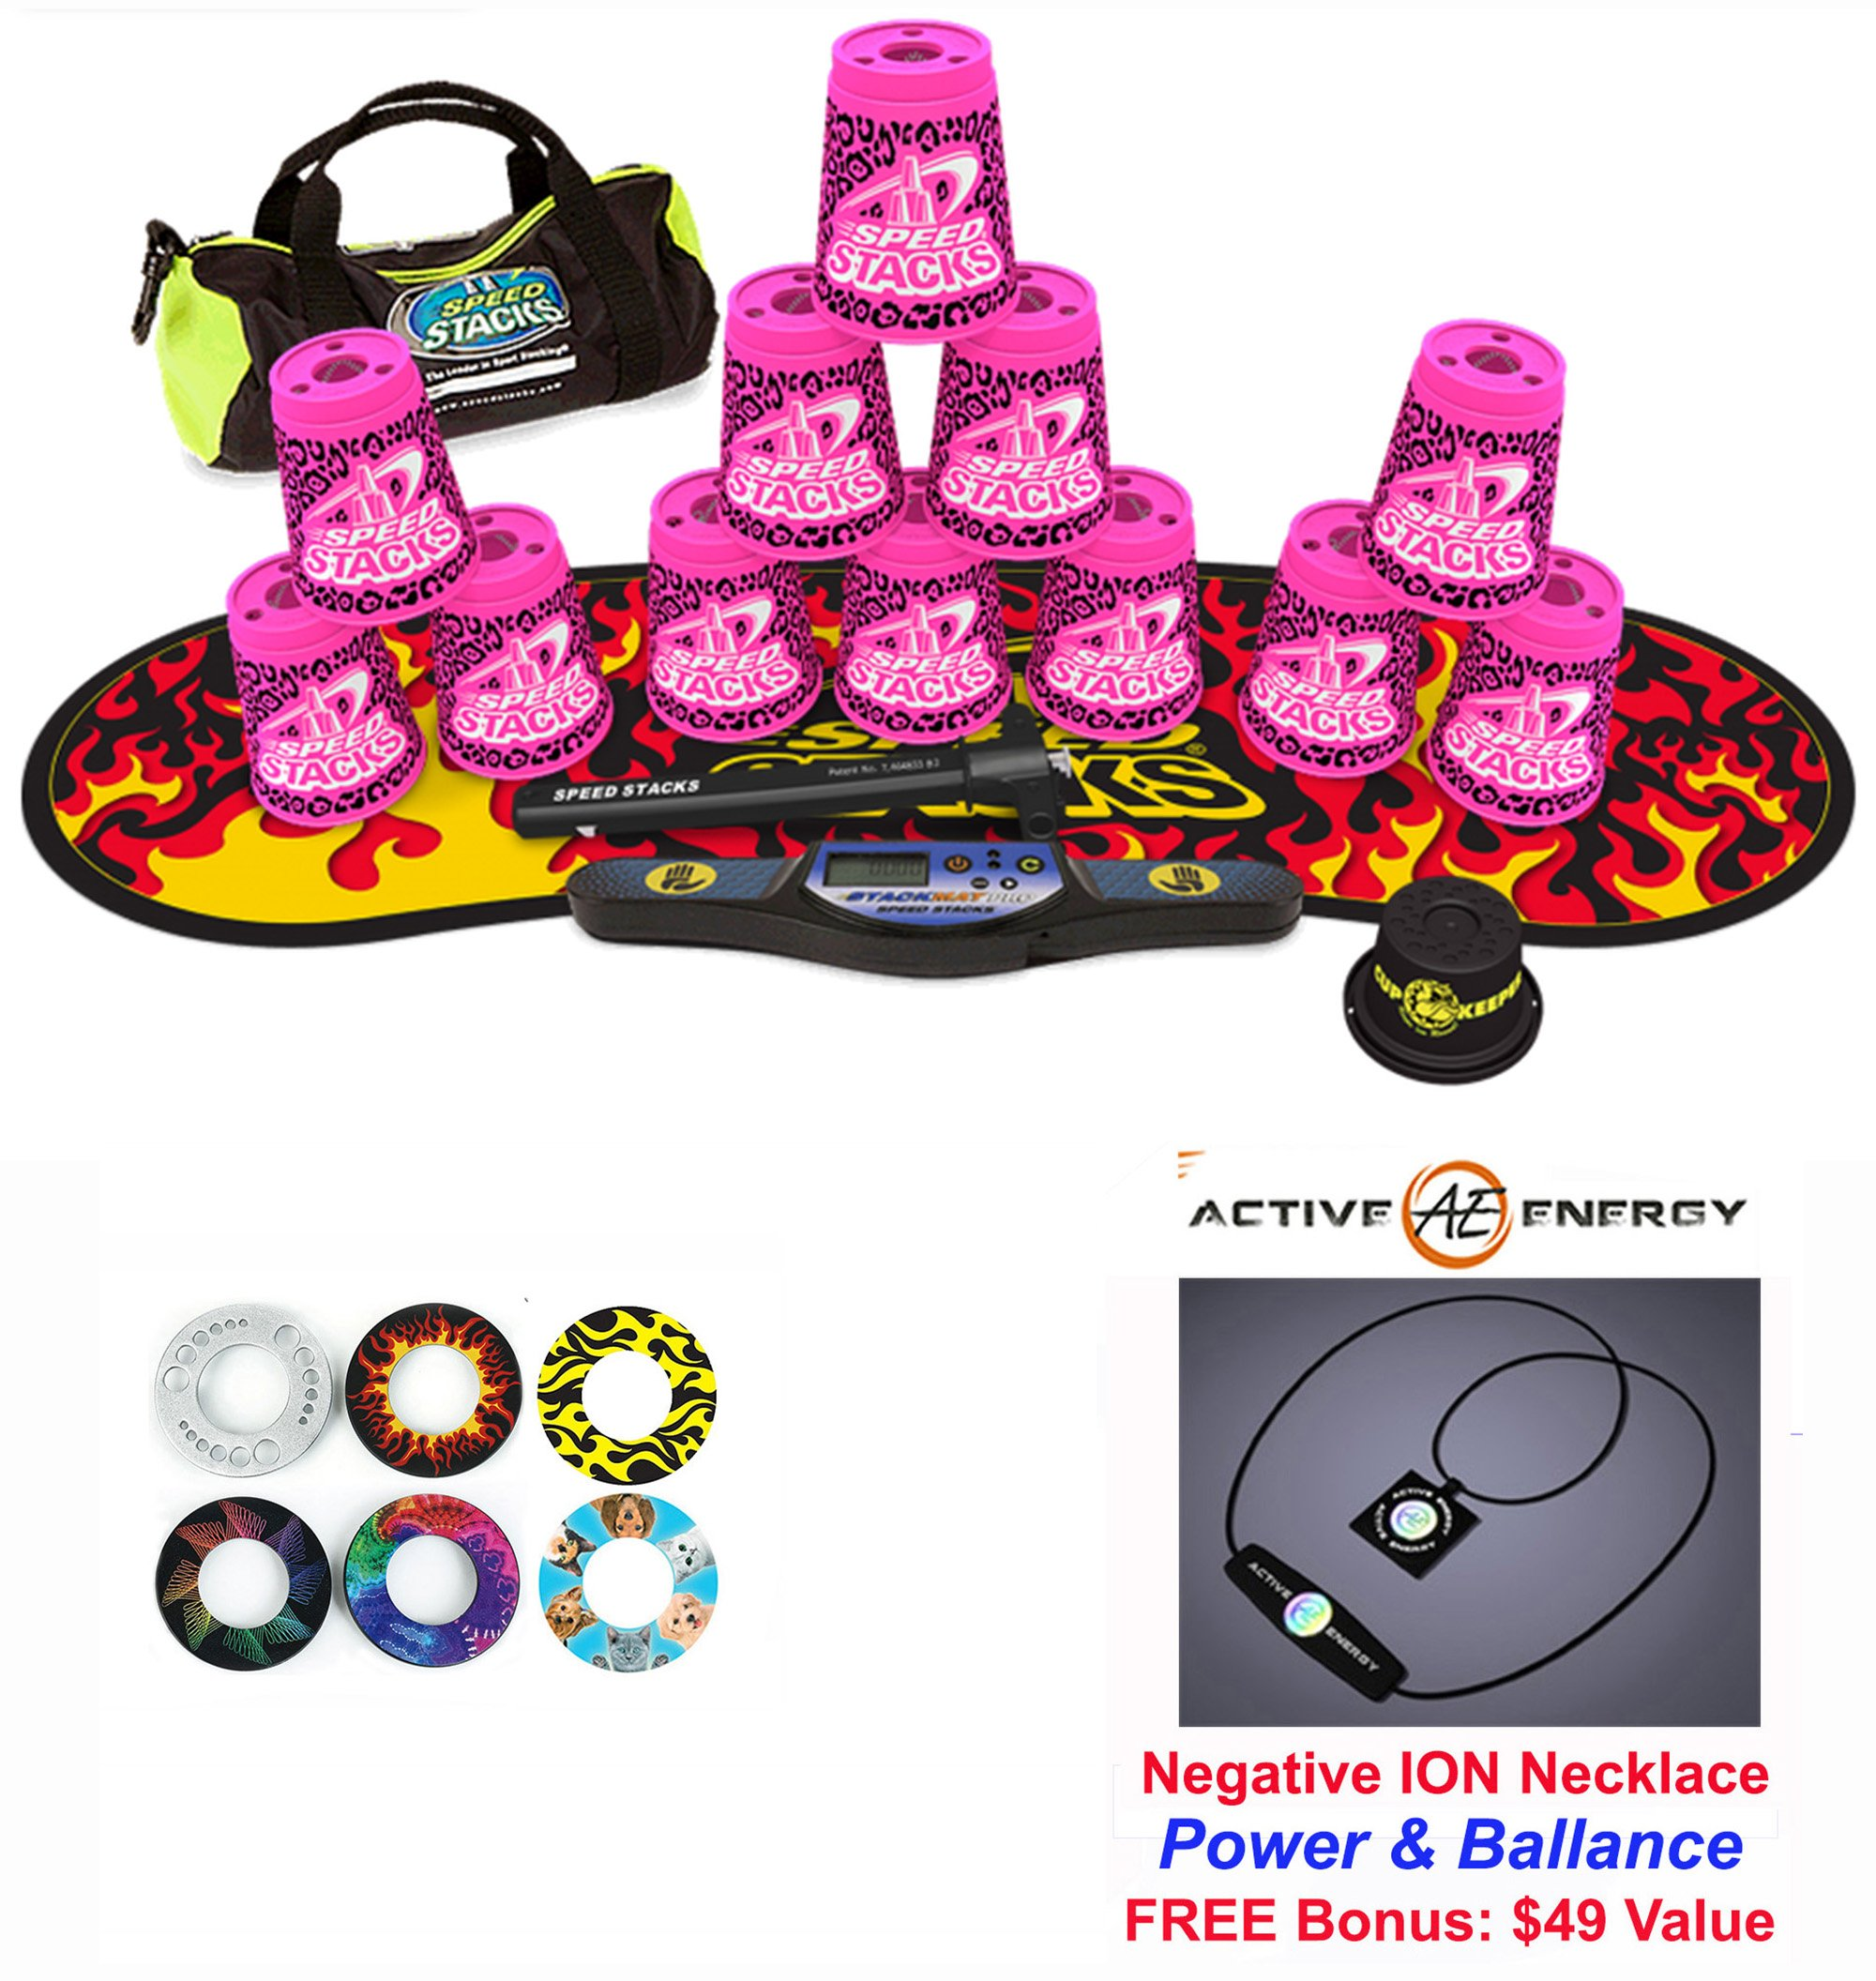 Speed Stacks Custom Combo Set: 12 PINK ZIPPY LEOPARD 4'' Cups, Cup Keeper, Quick Release Stem, Pro Timer, Gen 3 Premium Black Flame Mat, 6 Snap Tops, Gear Bag + FREE: Active Energy Necklace $49